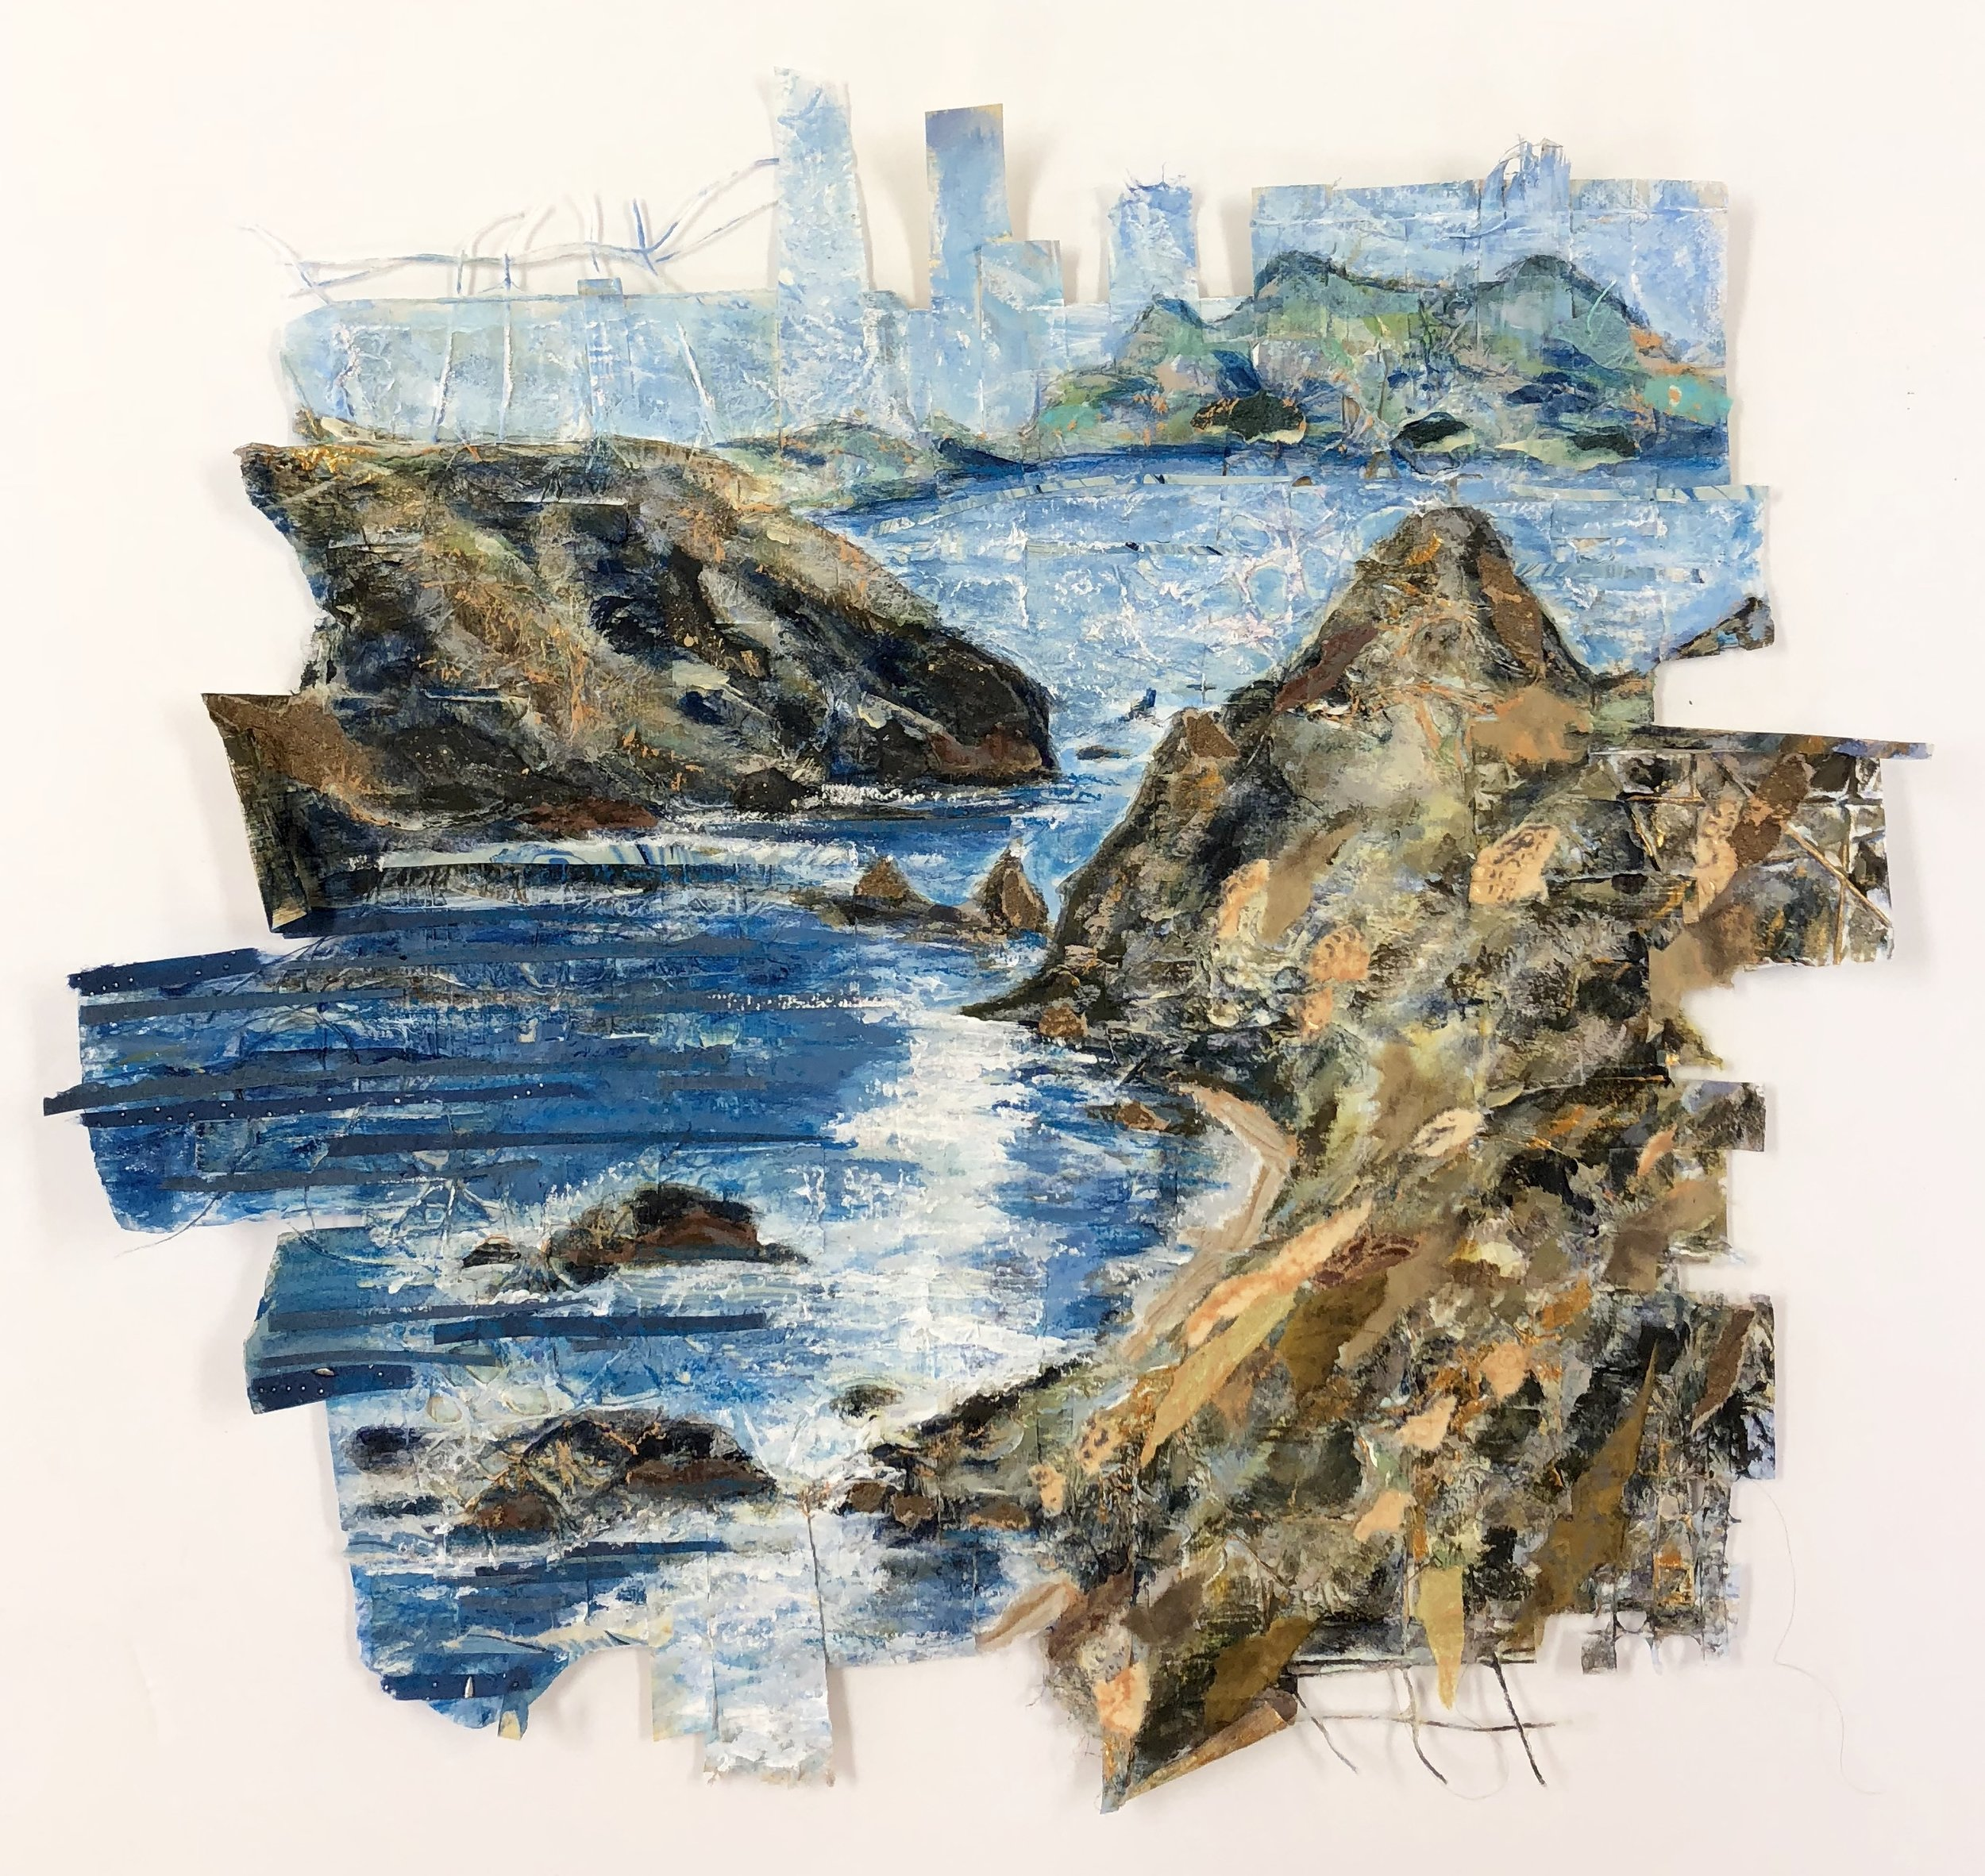 Inspiration Point - Anacapa Island, Channel Islands National Park - mixed media